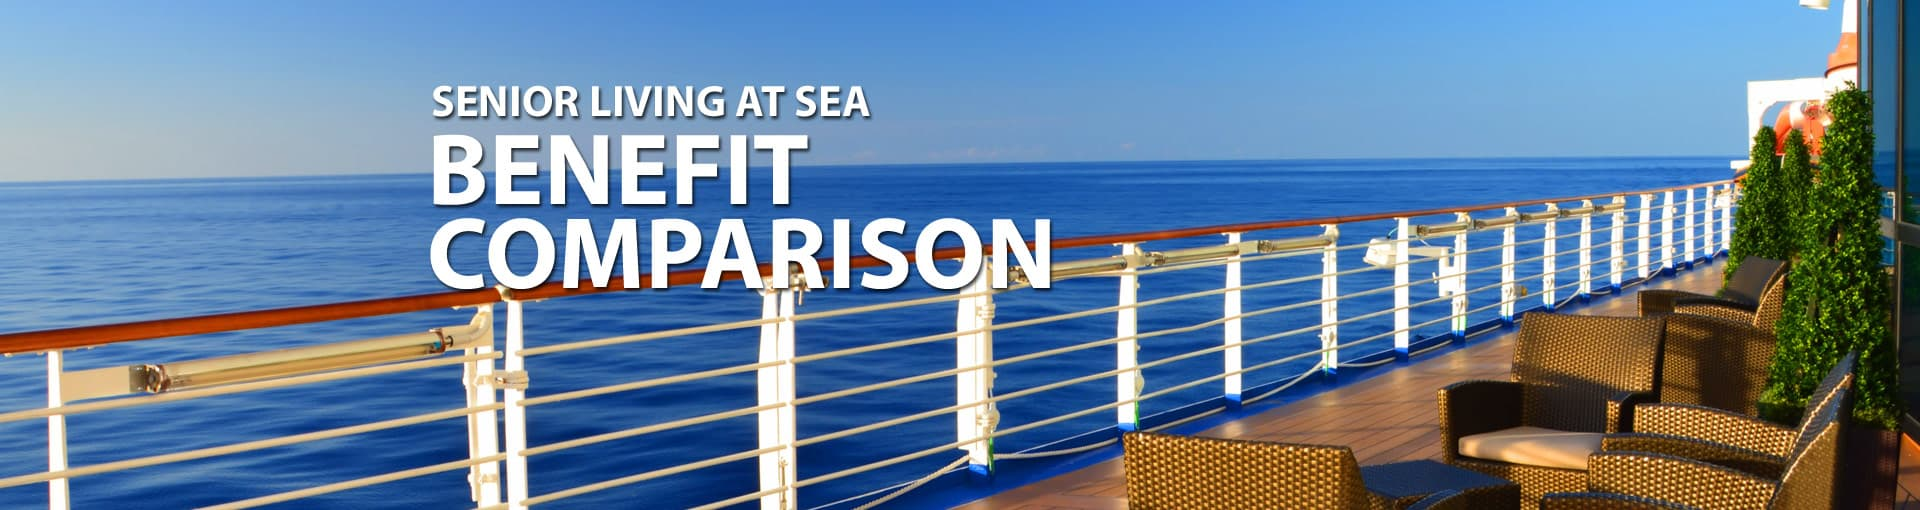 Senior Living at Sea Benefit Comparison